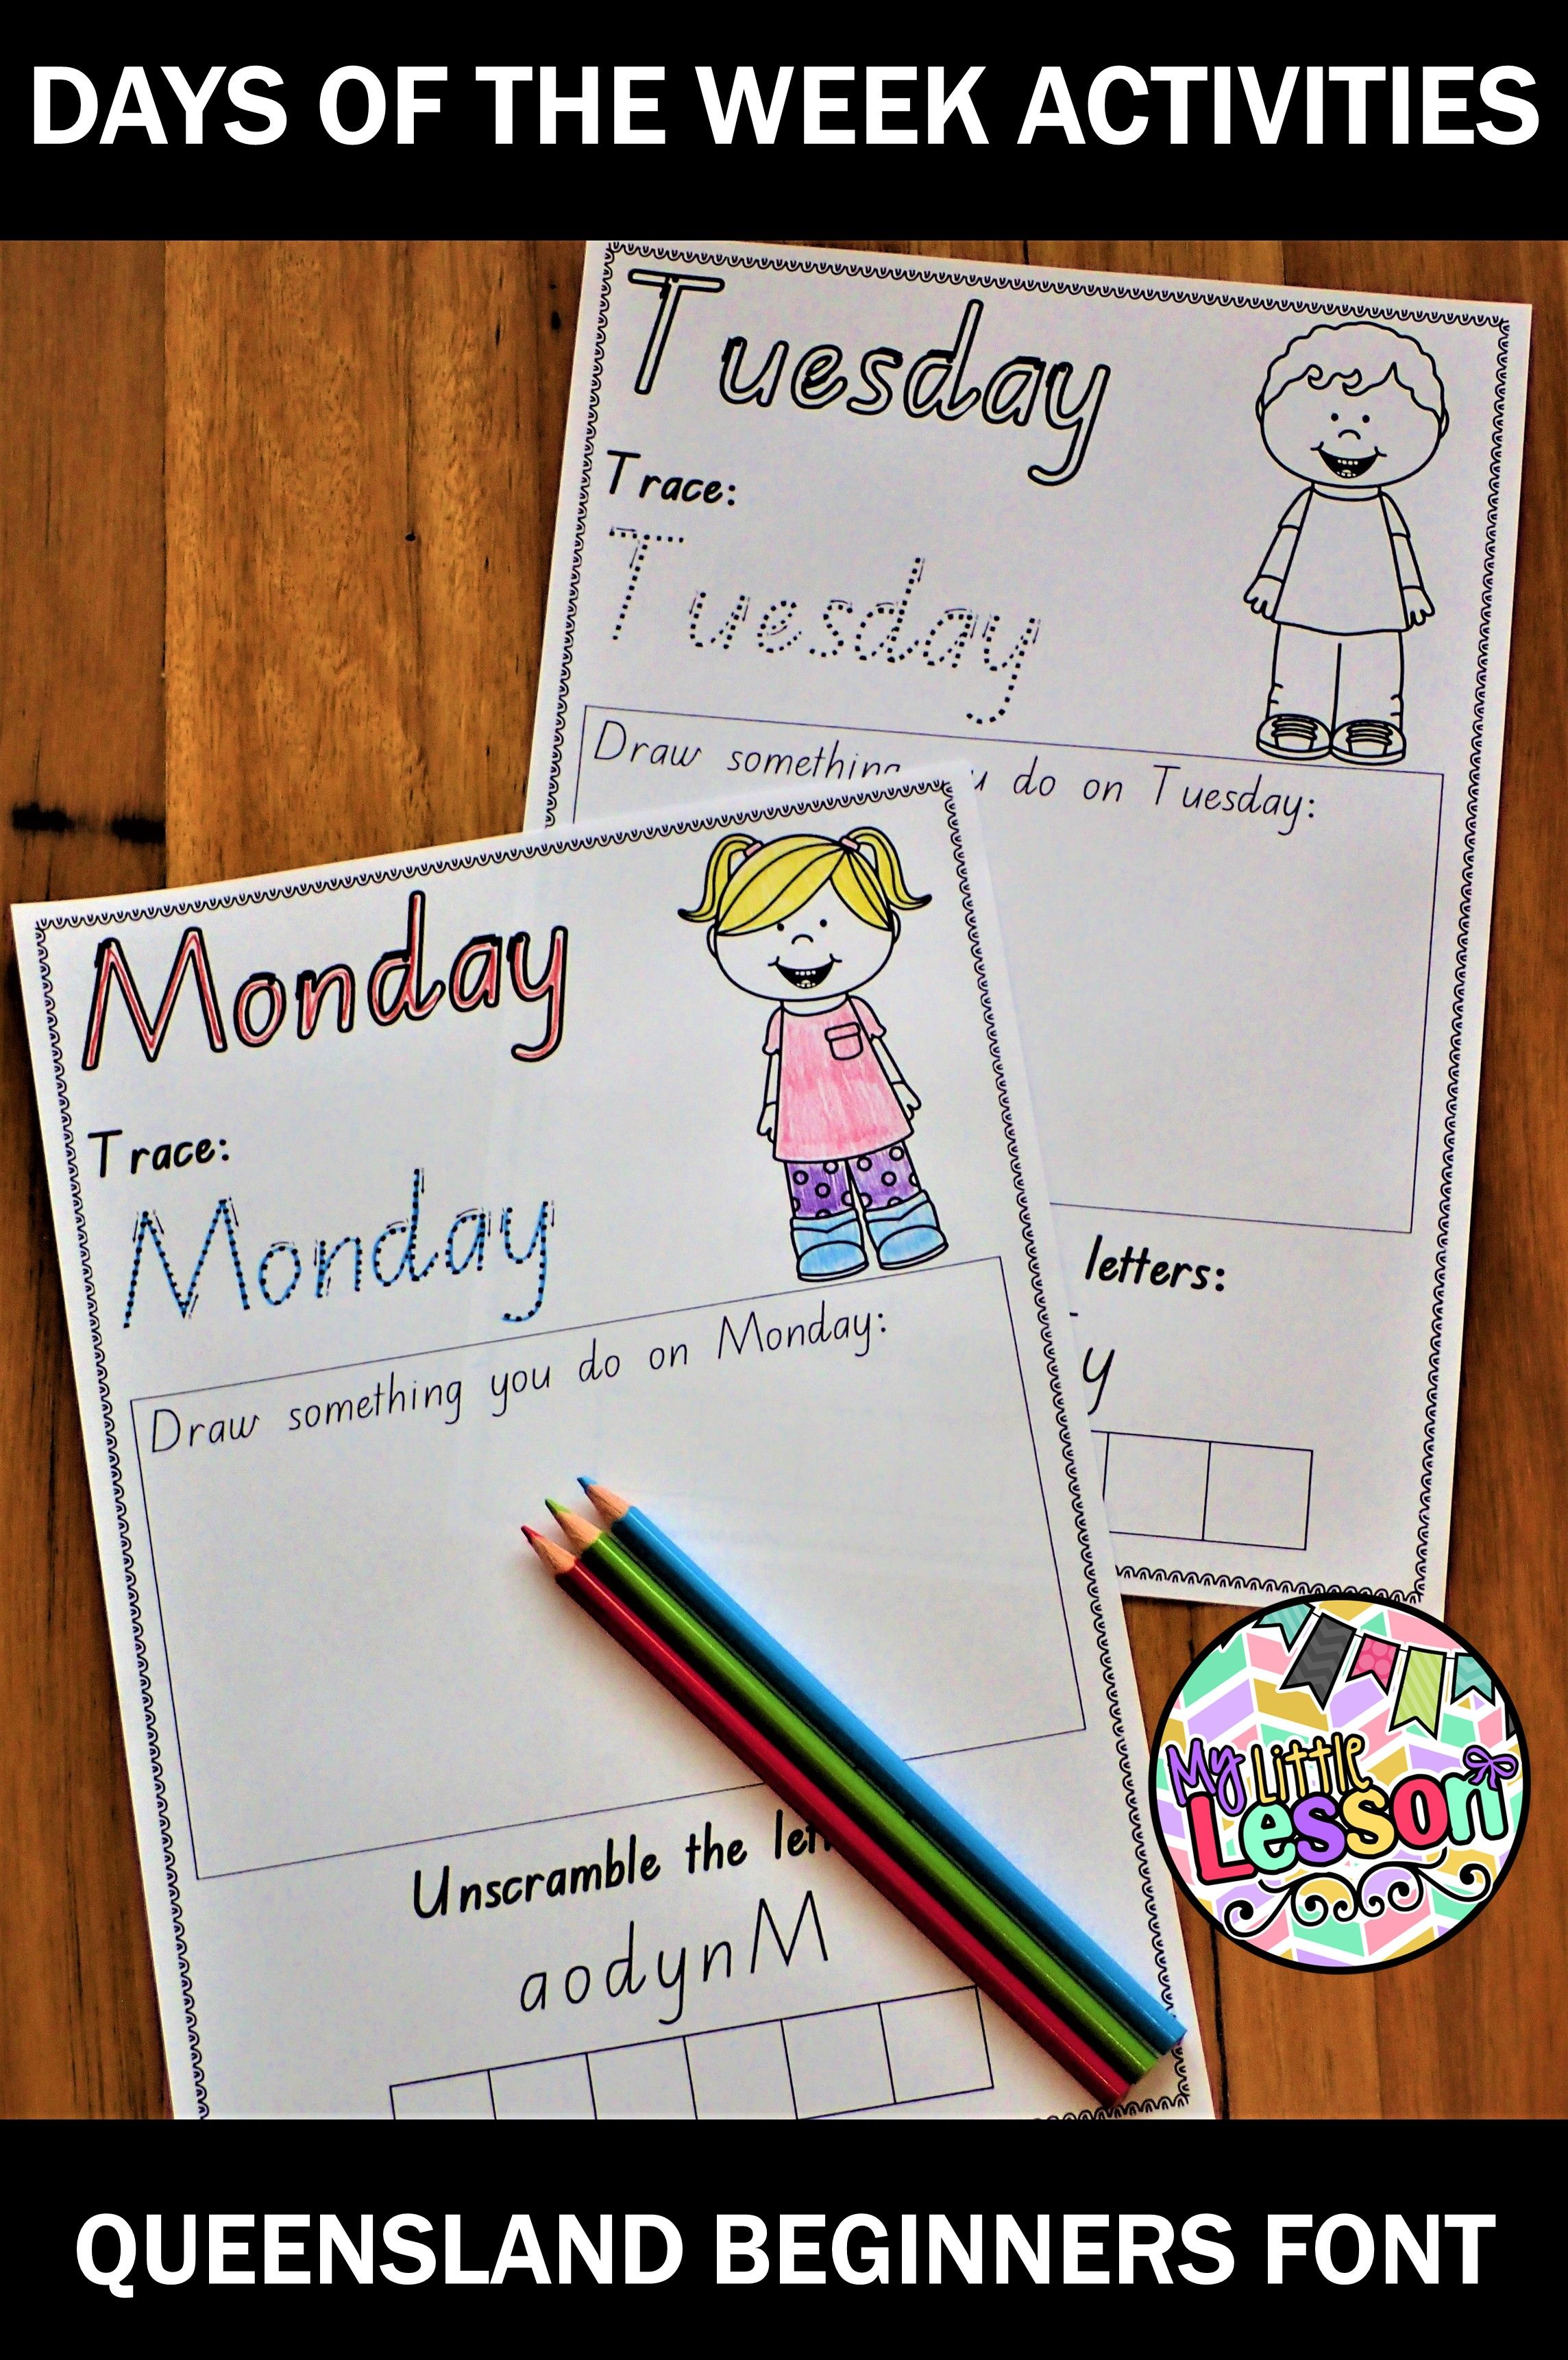 These Days Of The Week Activities Have Been Created In The Queensland Beginners Font It Days Of The Week Activities Foundation Maths Primary School Curriculum [ 3444 x 2288 Pixel ]